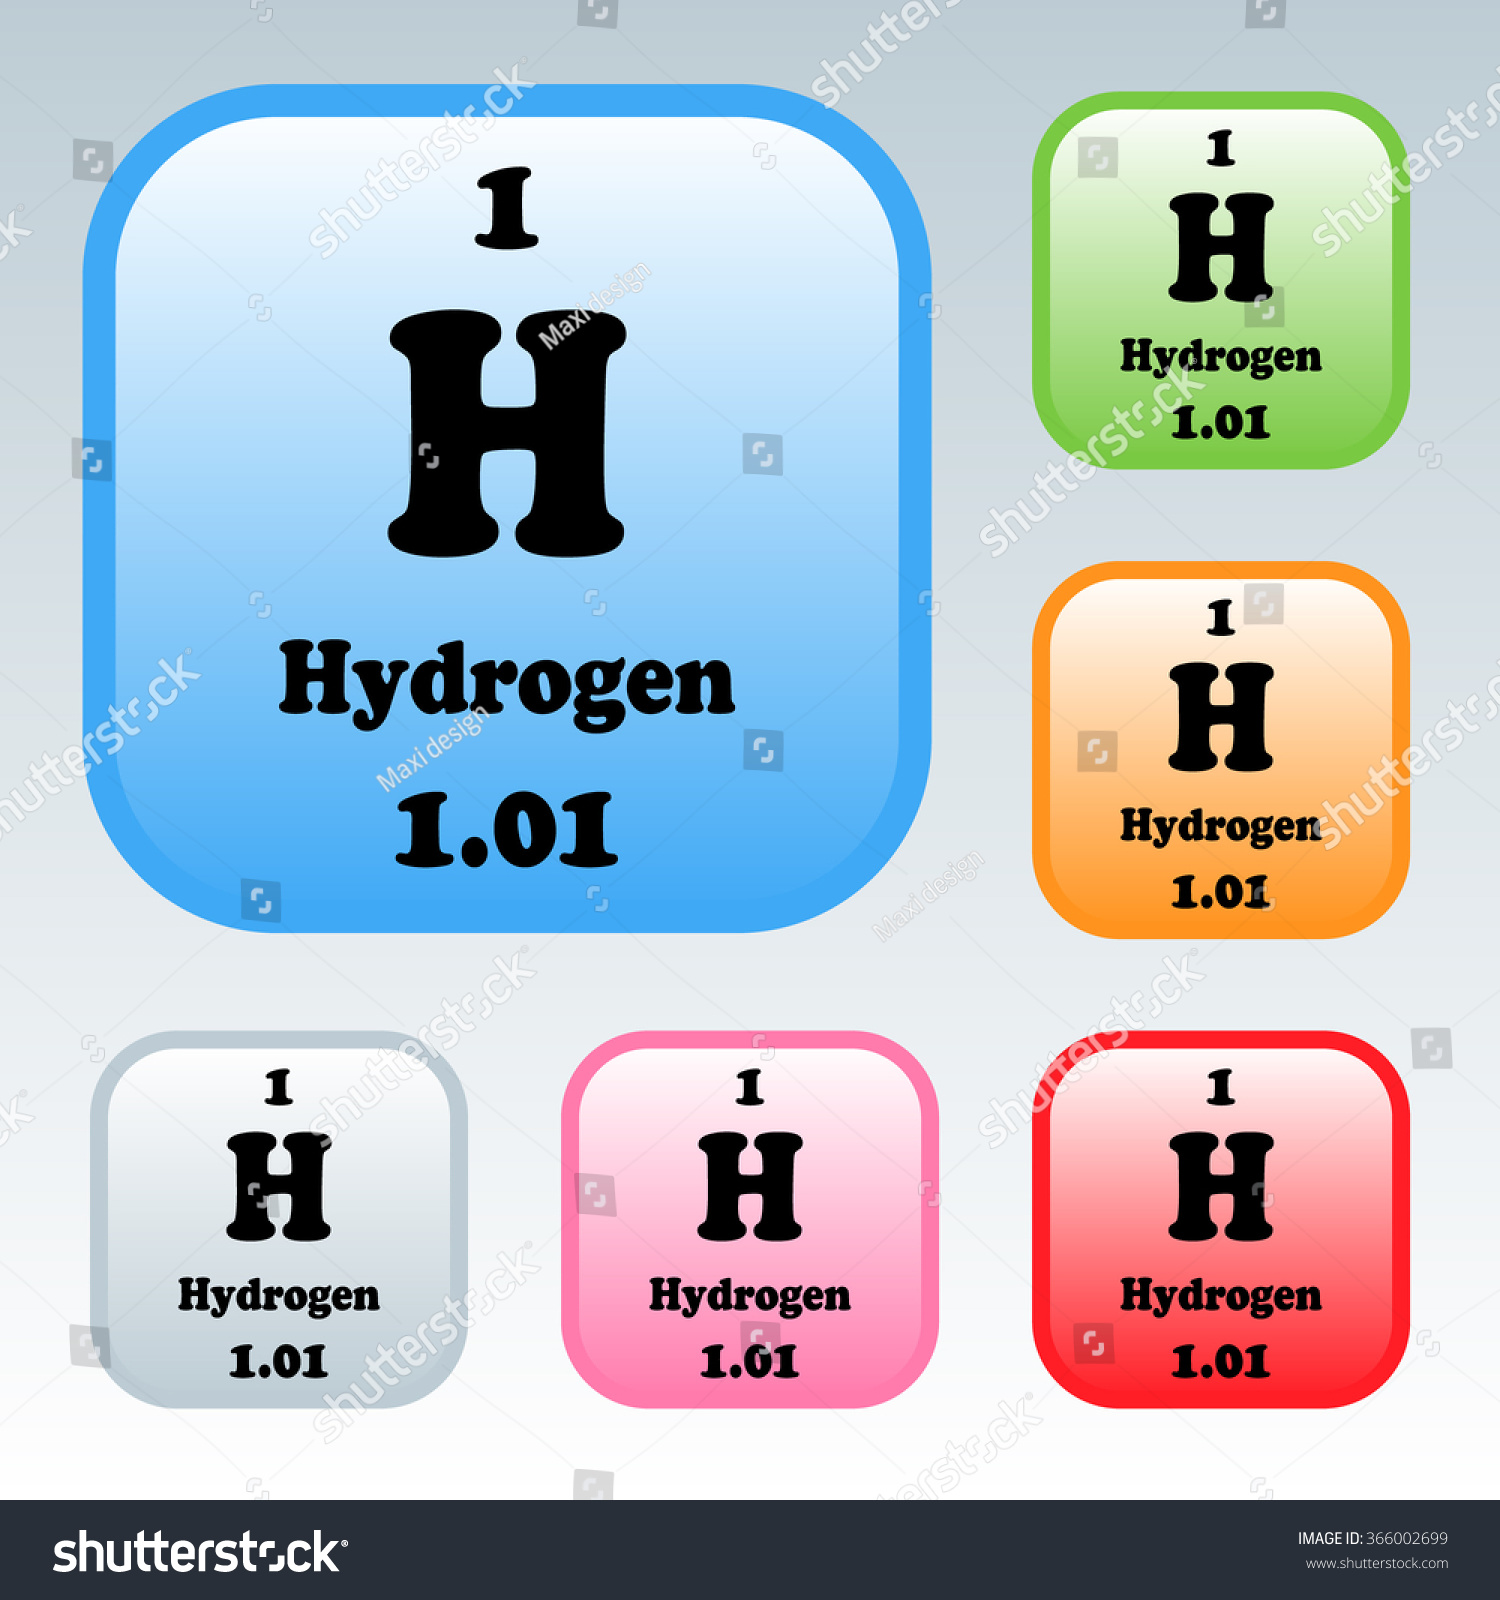 Hydrogen periodic table facts images periodic table images hydrogen periodic table facts image collections periodic table periodic table of elements hydrogen image collections periodic gamestrikefo Gallery